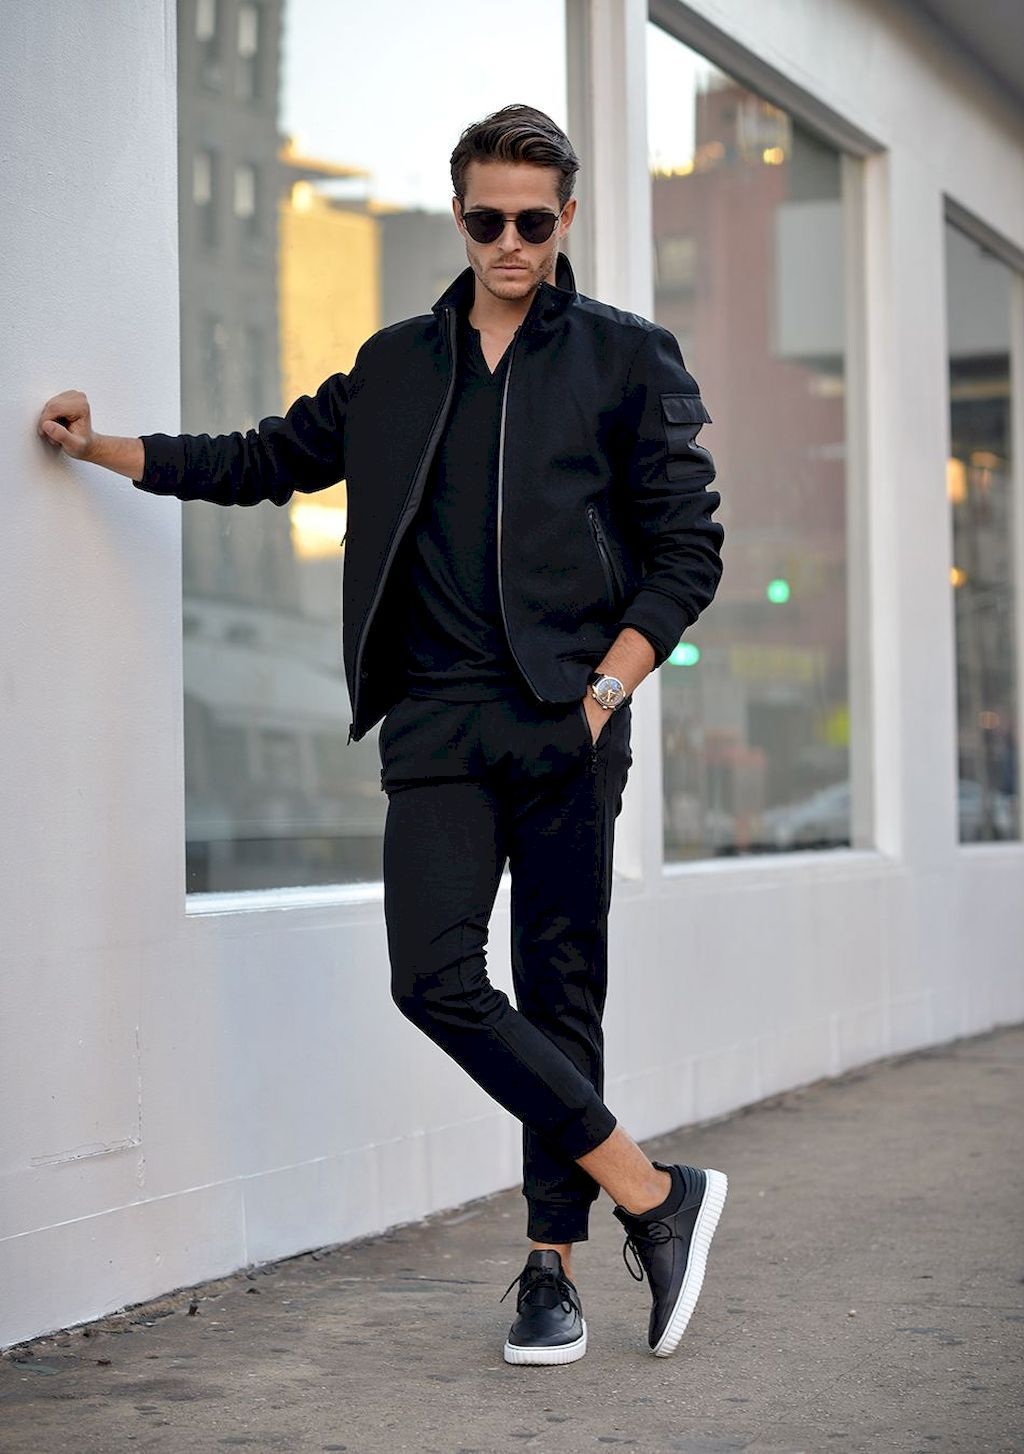 30 Men Outfit Ideas With Bomber Jacket | Black outfit men